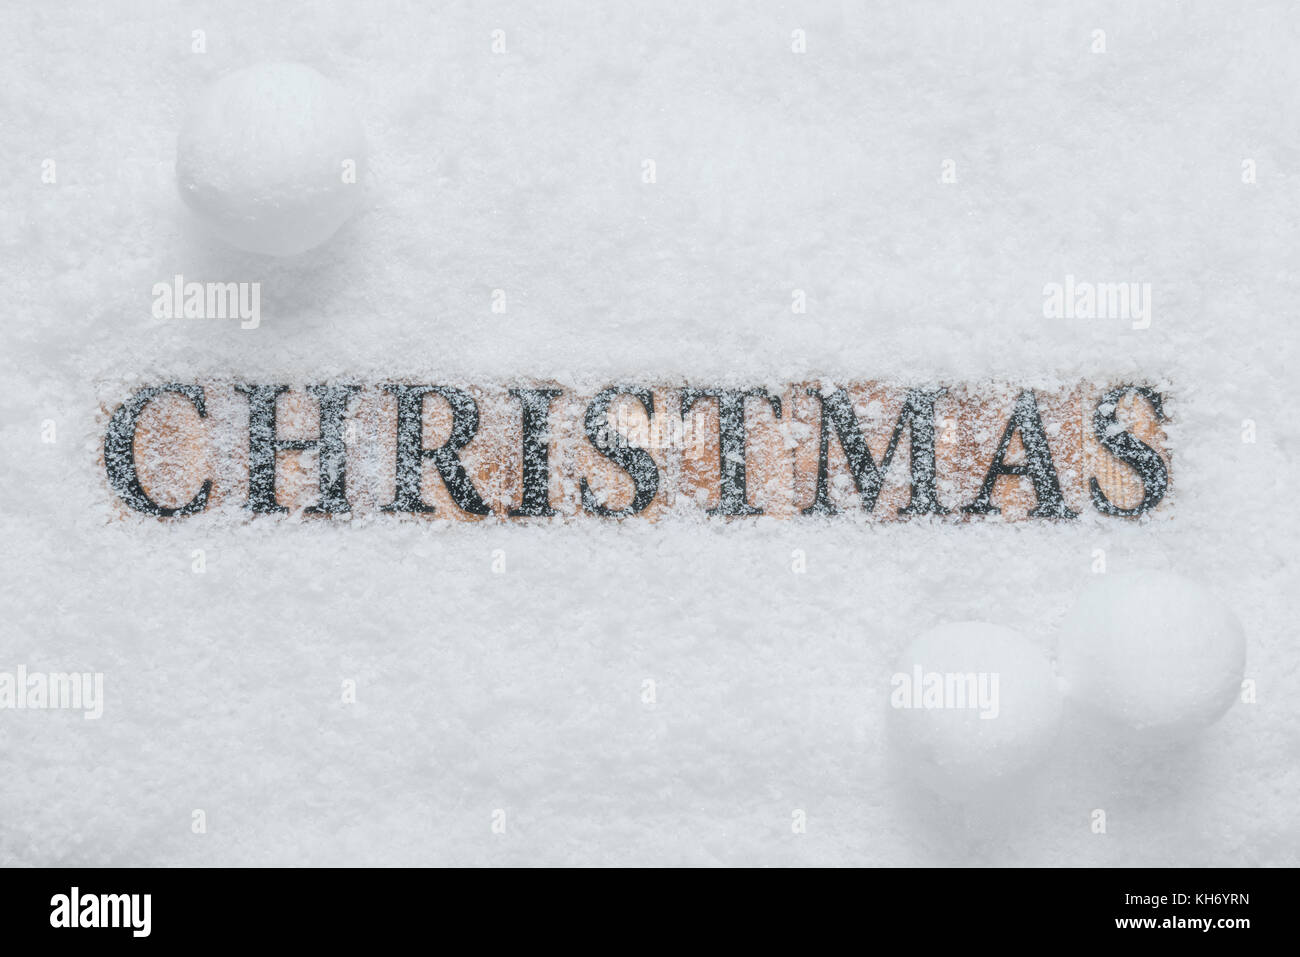 The word Christmas made with wooden letter blocks, on a snow background with snowballs. - Stock Image